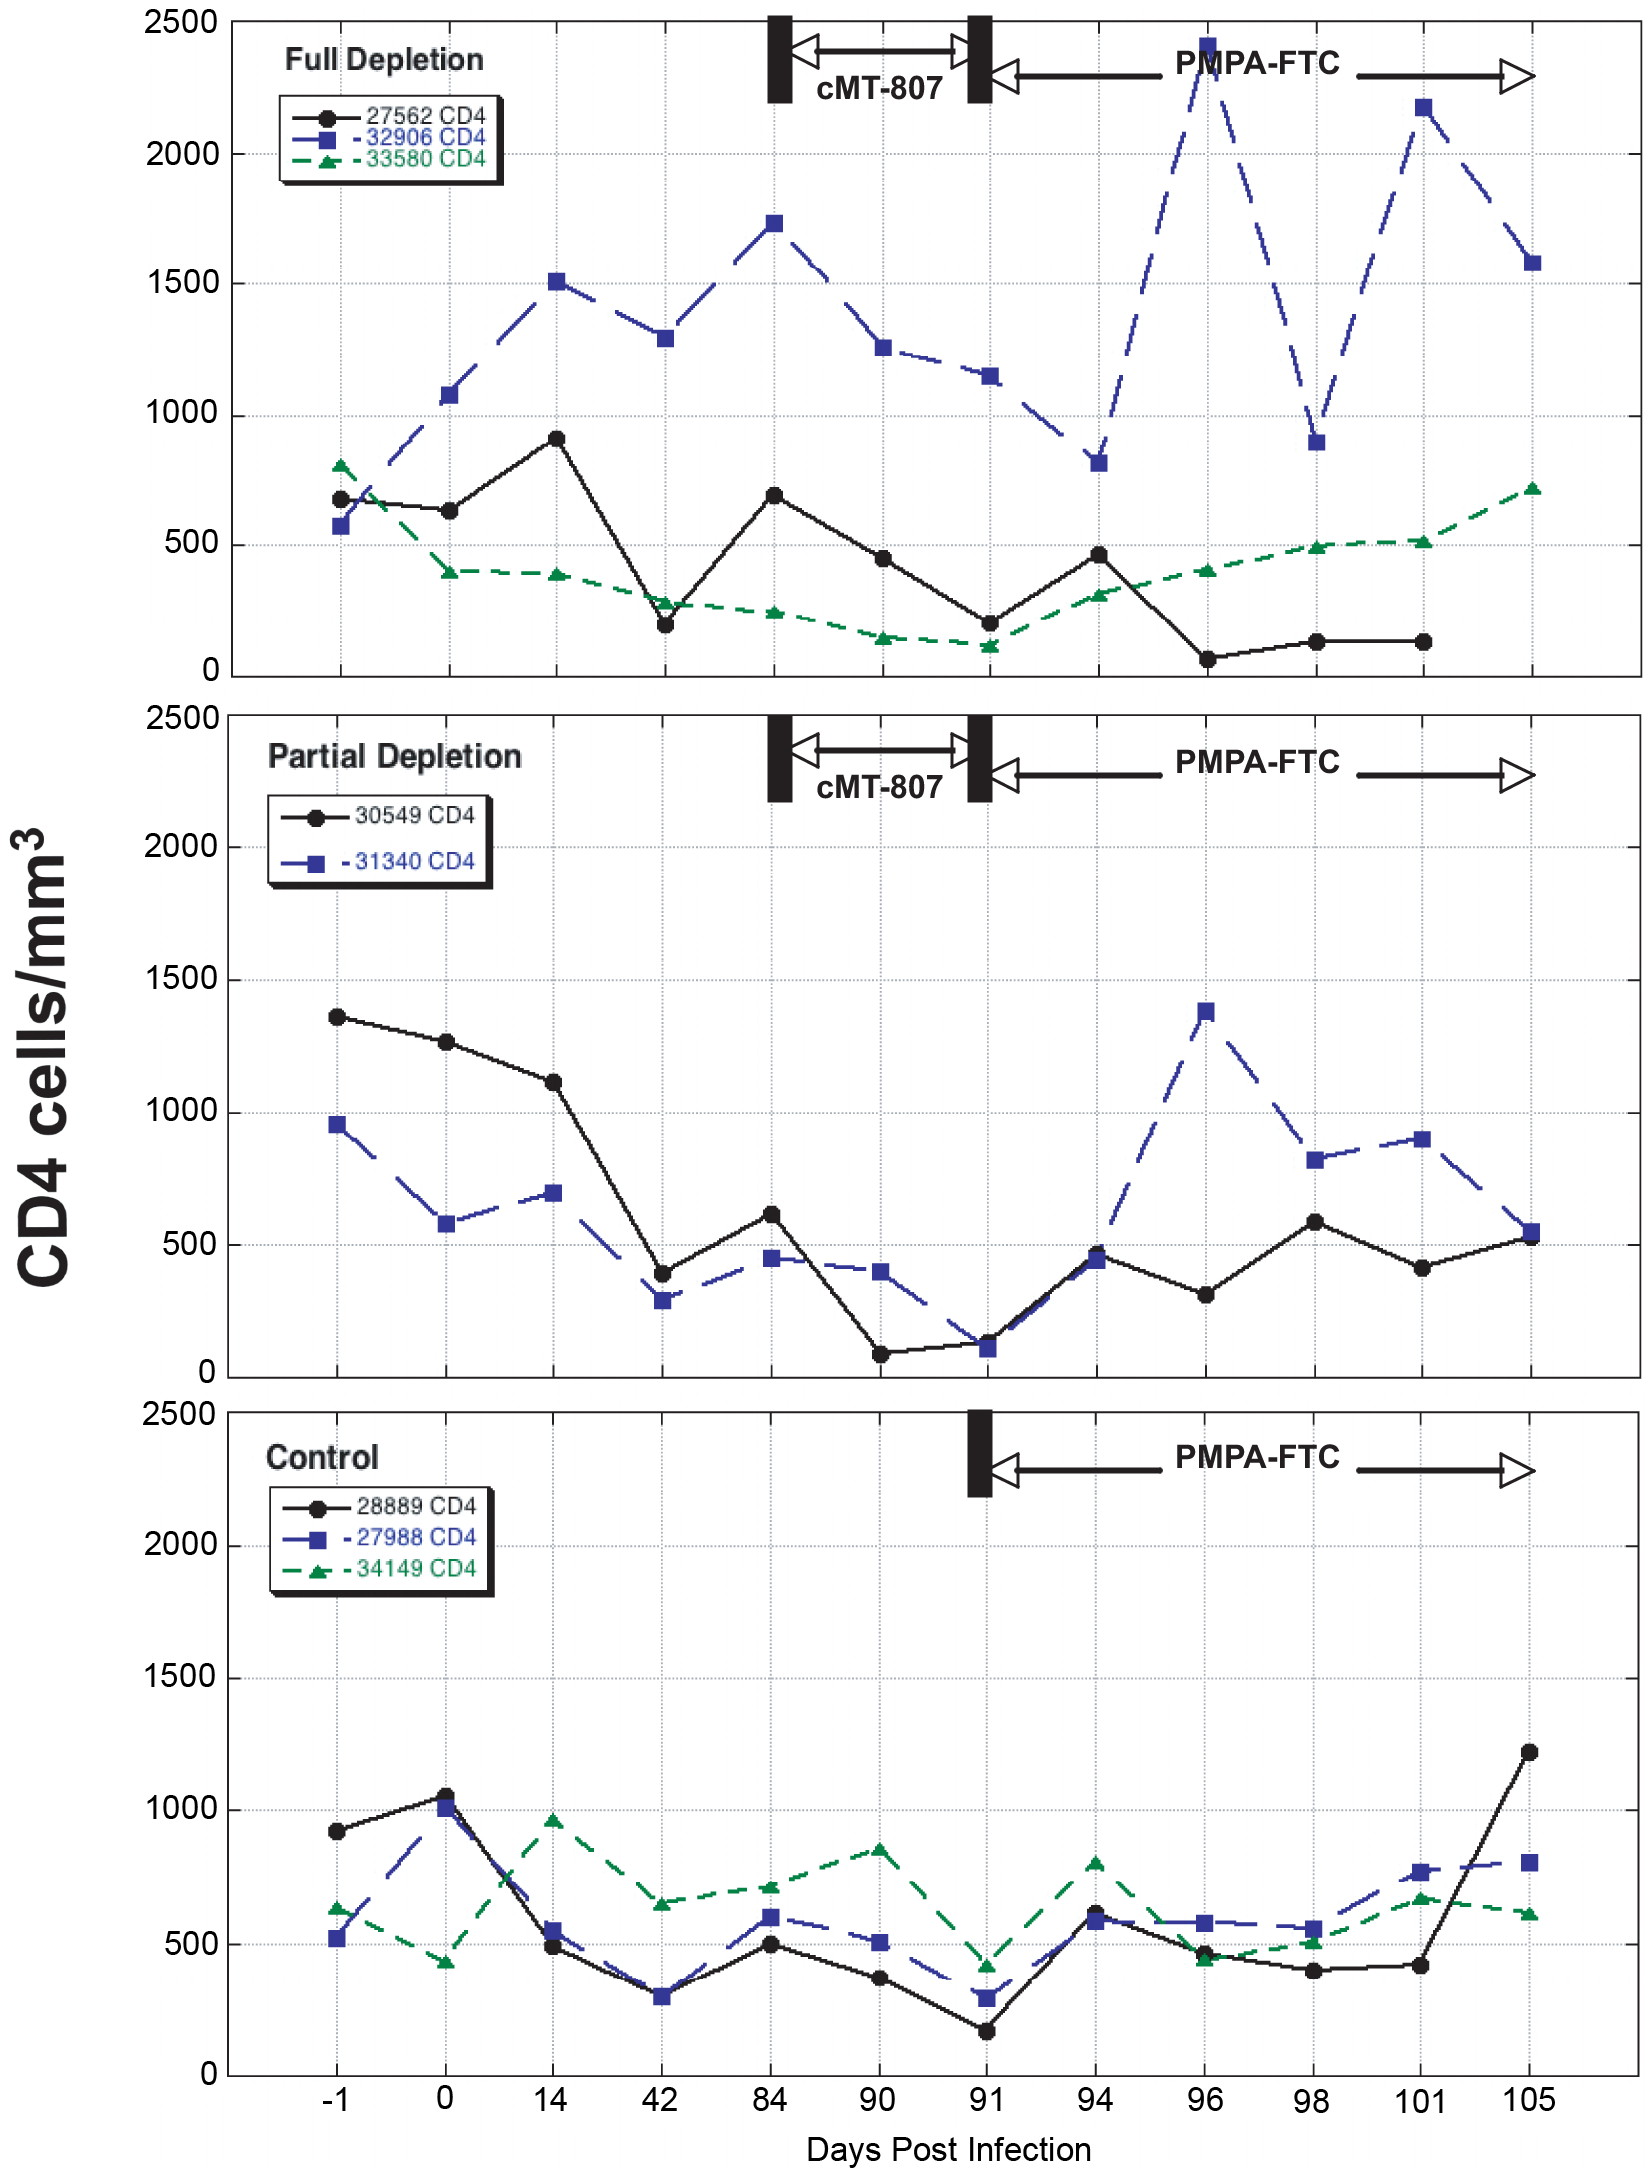 CD4 T-cell concentrations before, following treatment with cMT-807 antibody and after starting PMPA/FTC.